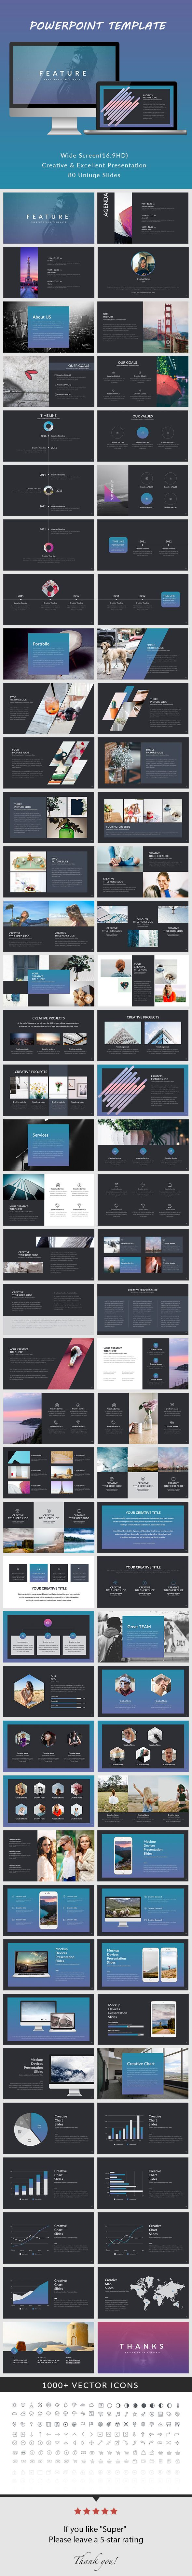 Feature  Creative PowerPoint Presentation  #modern #pptx template • Download ➝ https://graphicriver.net/item/feature-creative-powerpoint-presentation/18474833?ref=pxcr